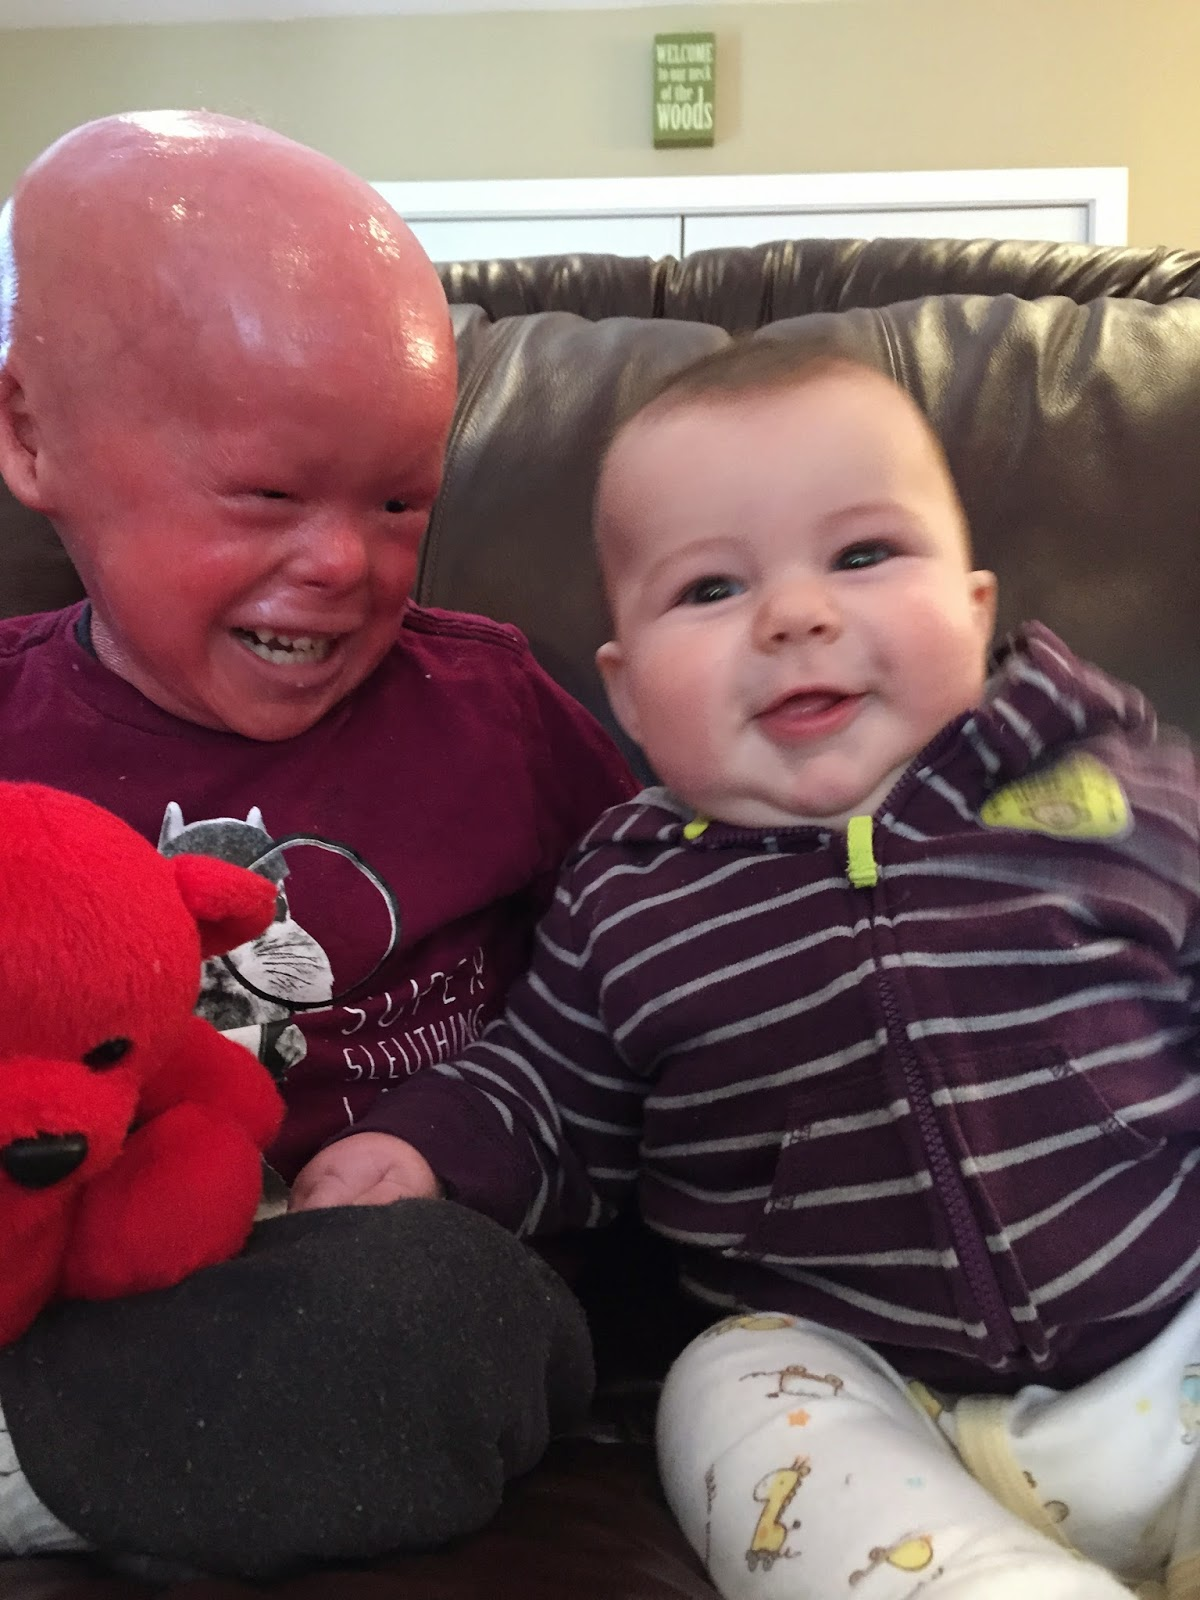 Evan, who has Harlequin Ichthyosis,with his brother